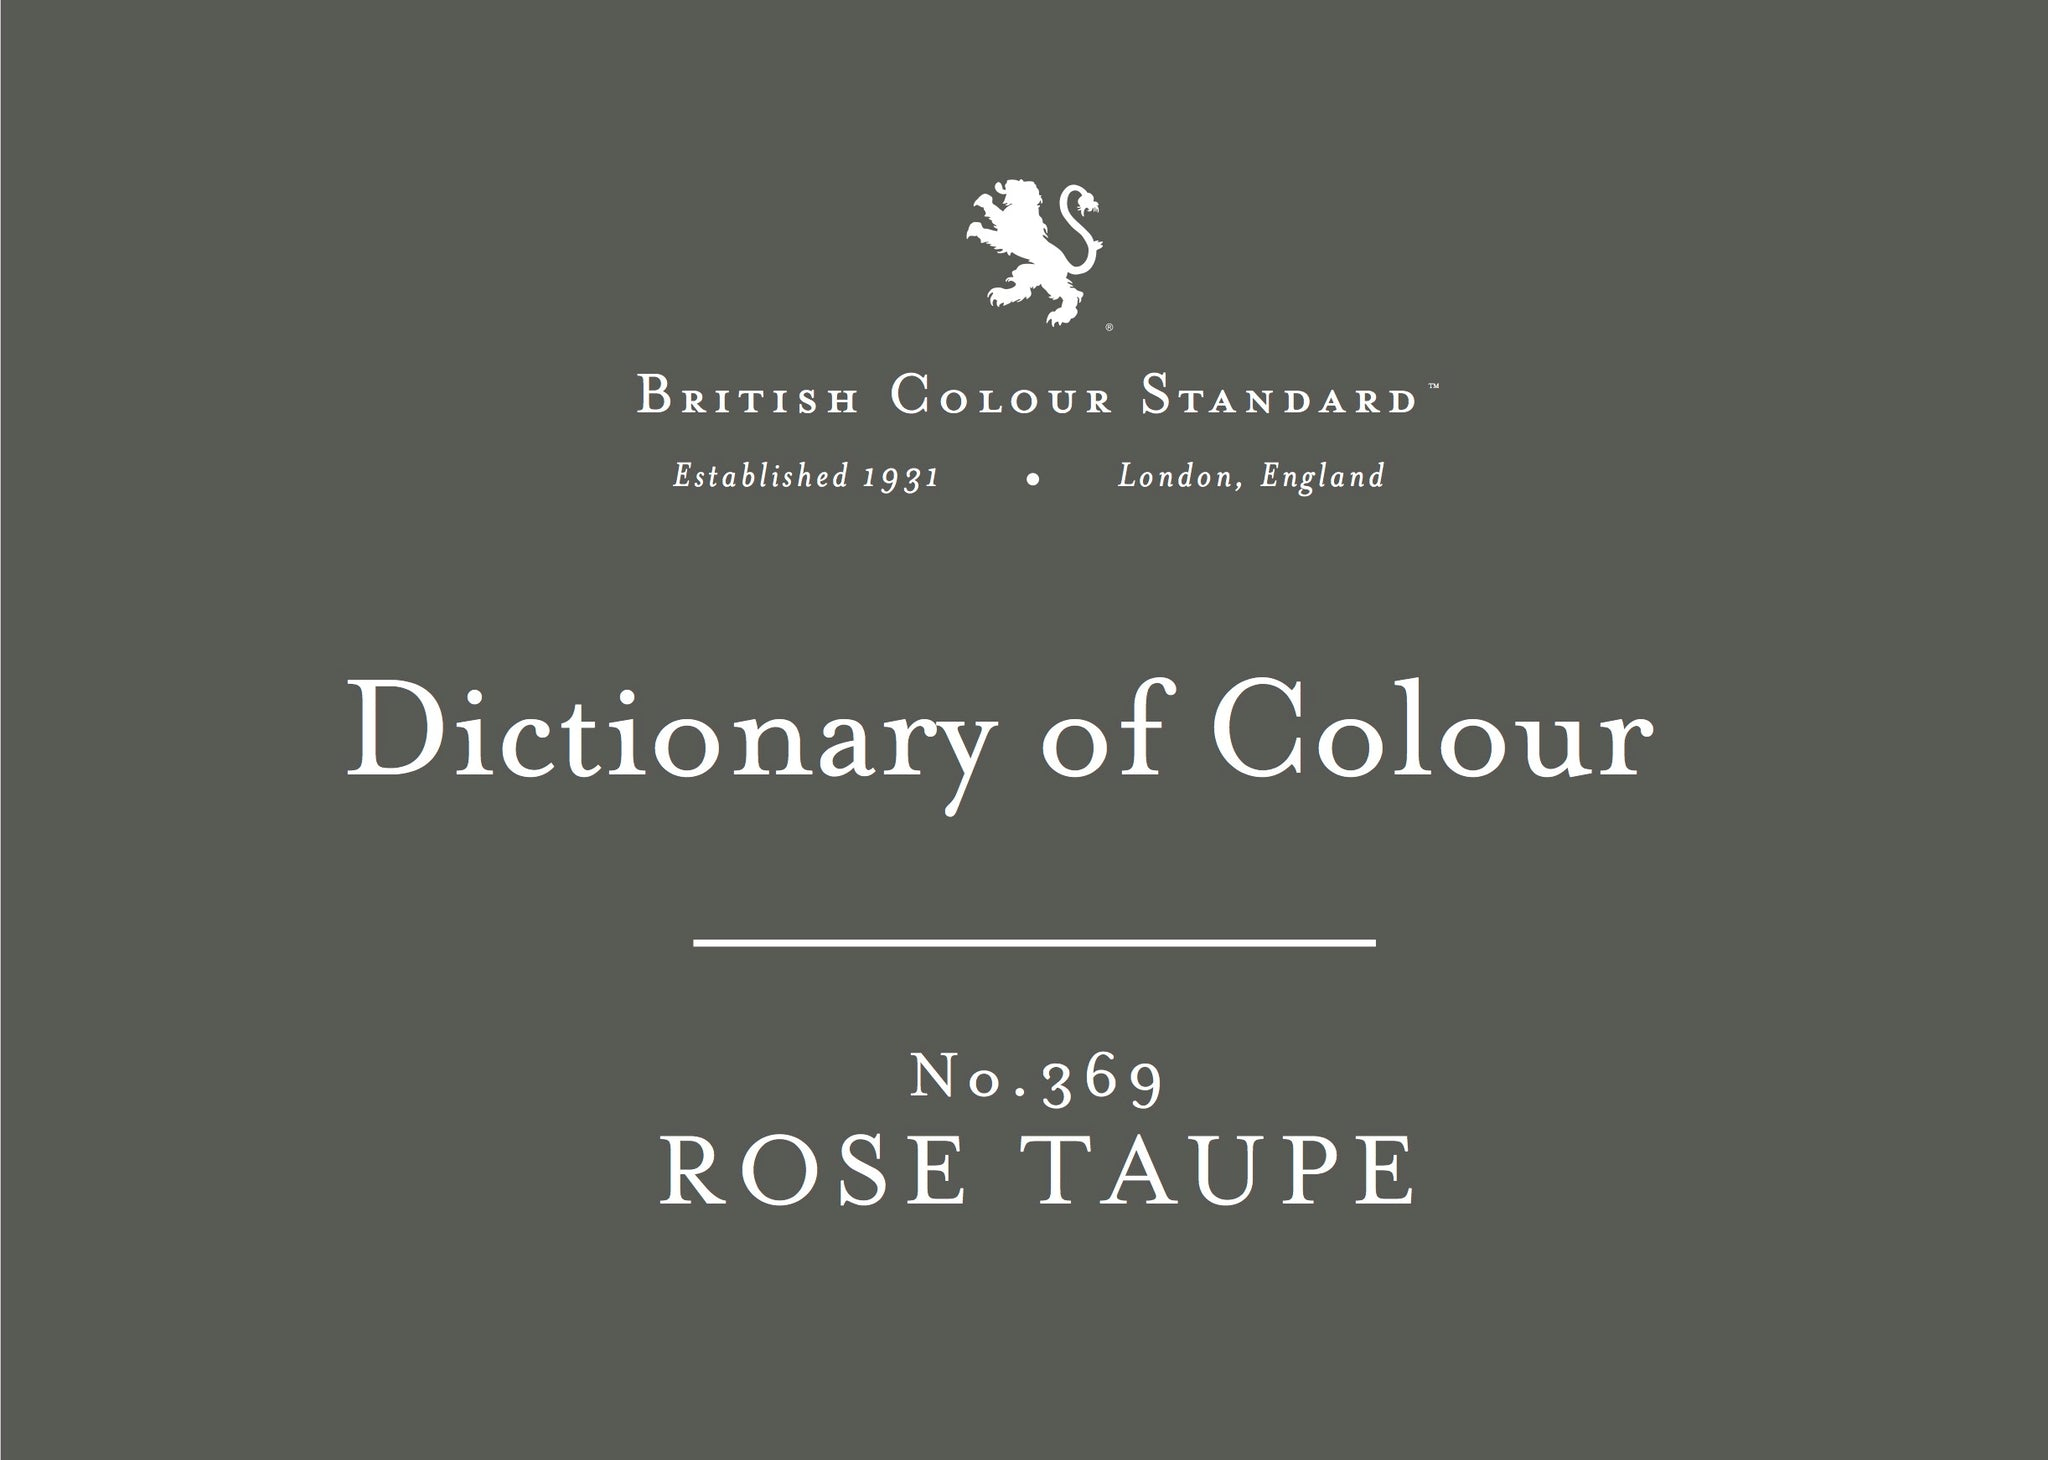 BRITISH COLOUR STANDARD - Rose Taupe No. 369